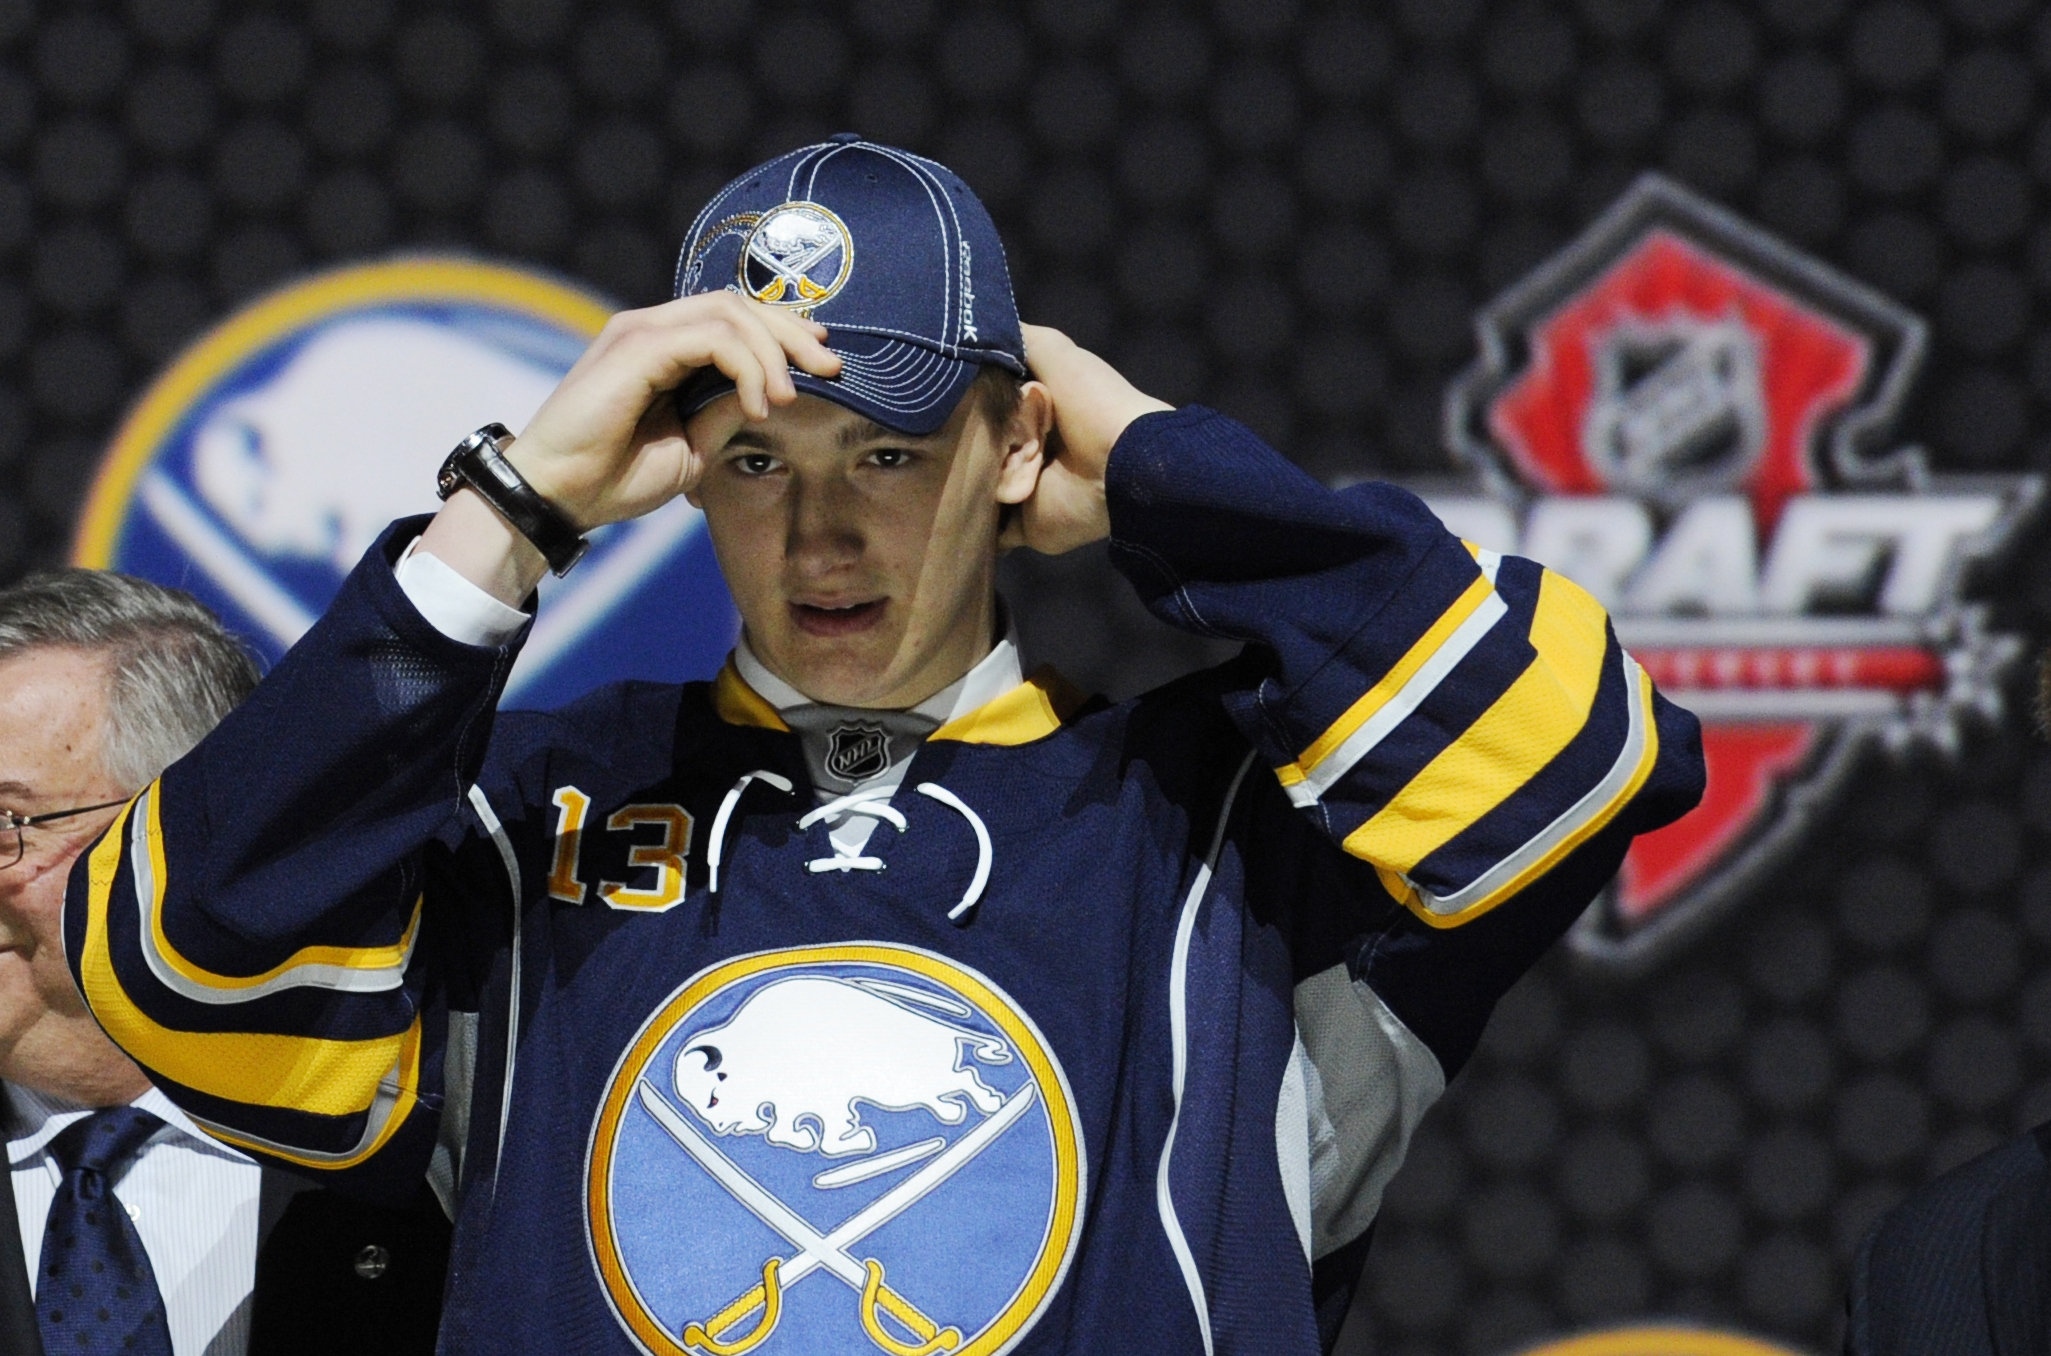 Nikita Zadorov, a defenseman, adjusts a Buffalo Sabres hat after being chosen 16th overall in the first round of the NHL draft.